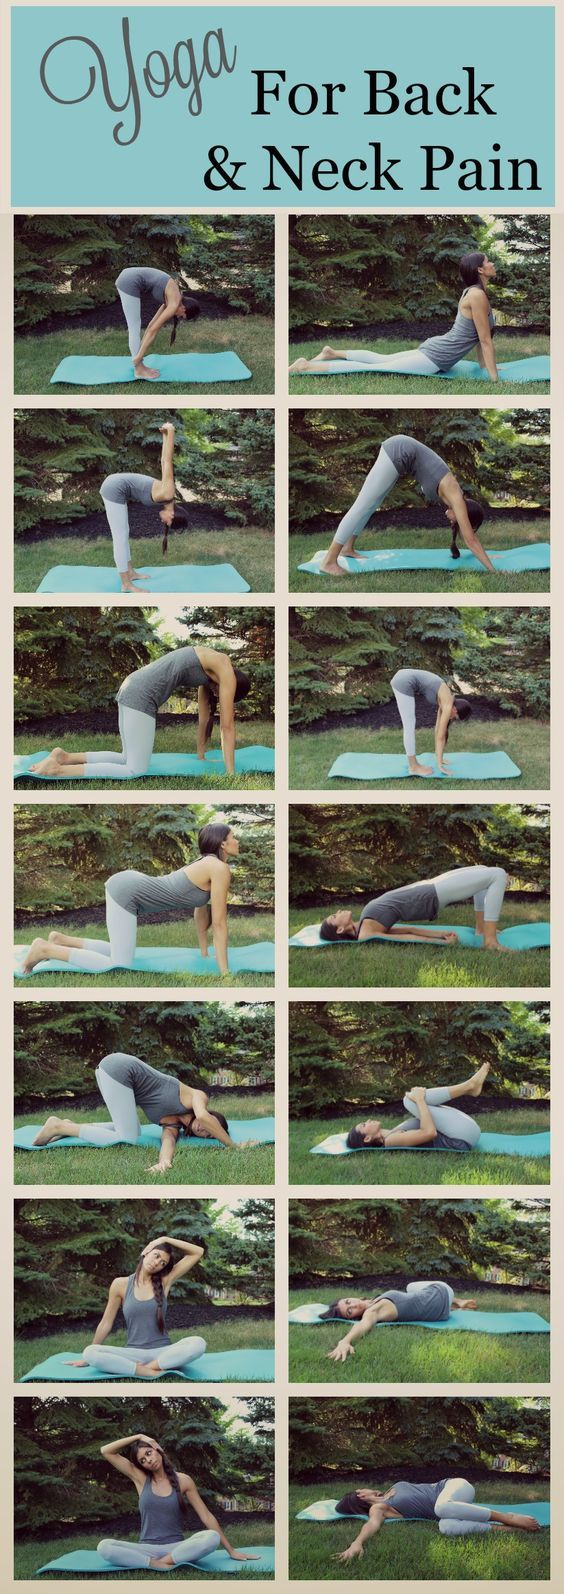 "See how yoga keeps you young & healthy at the Downdog Diary Yoga Blog found exclusively at DownDog Boutique. See the original post here: Beauty, Decor & More Image courtesy of Journeys of Yoga saved to the DownDog Boutique Pinterest board ""Yoga Keeps You Young"""